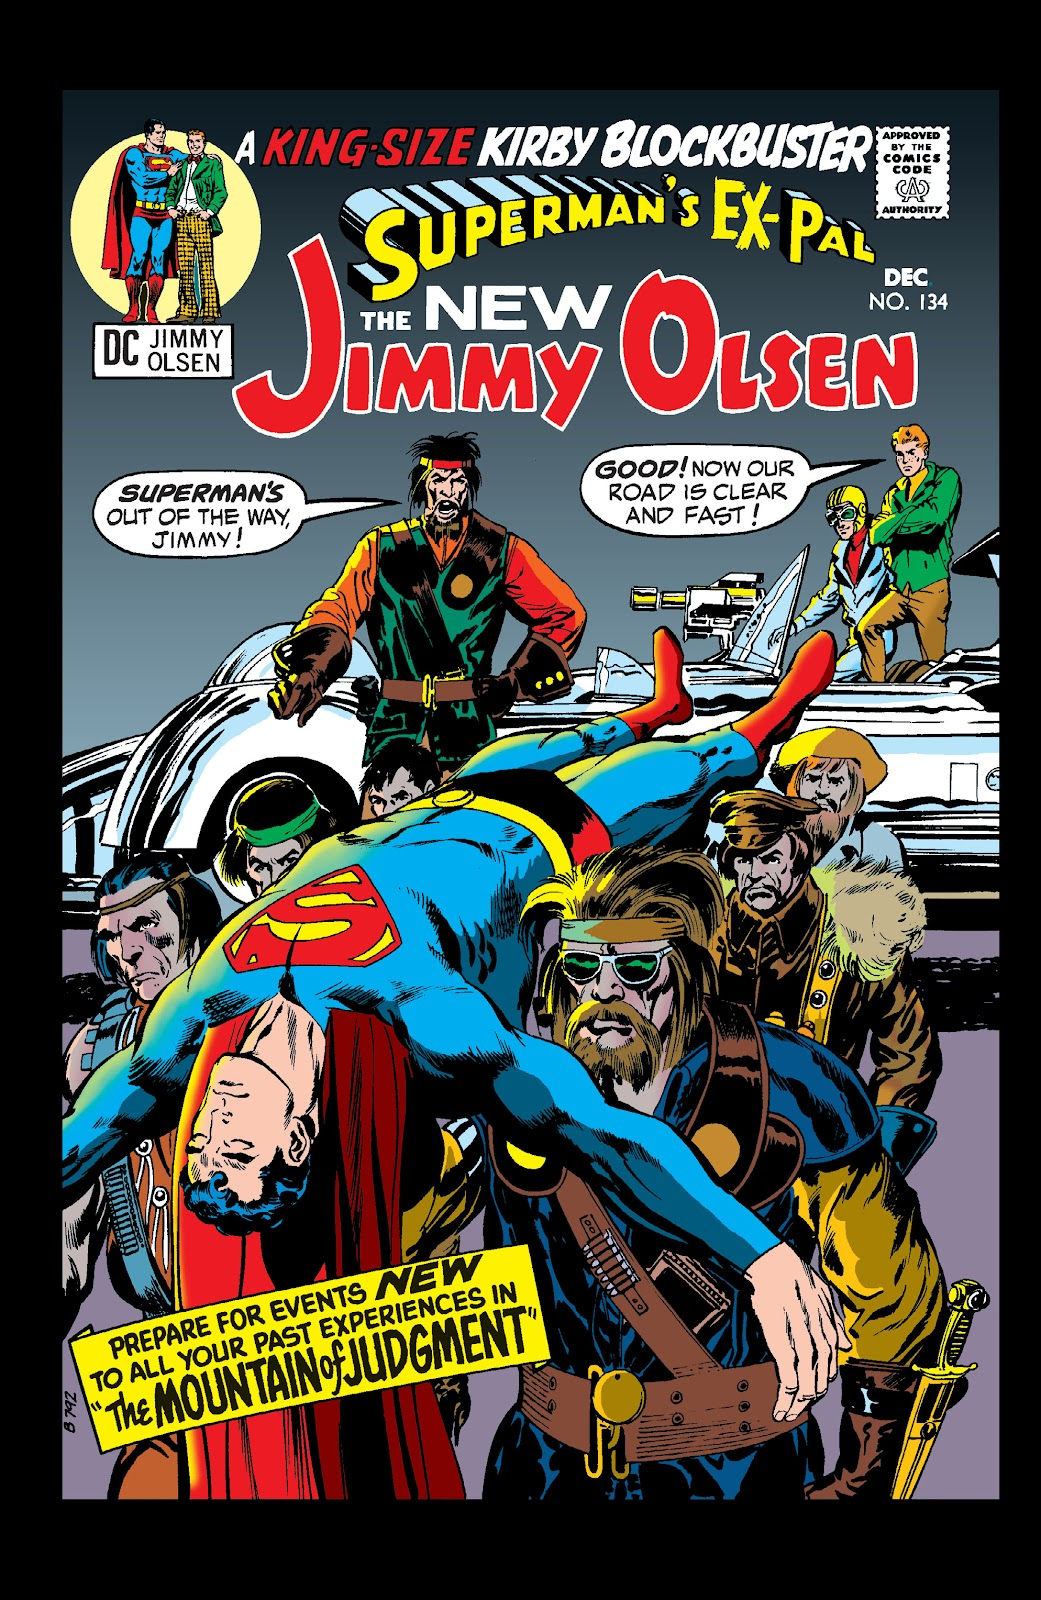 Read online Superman's Pal, Jimmy Olsen by Jack Kirby comic -  Issue # TPB (Part 1) - 31